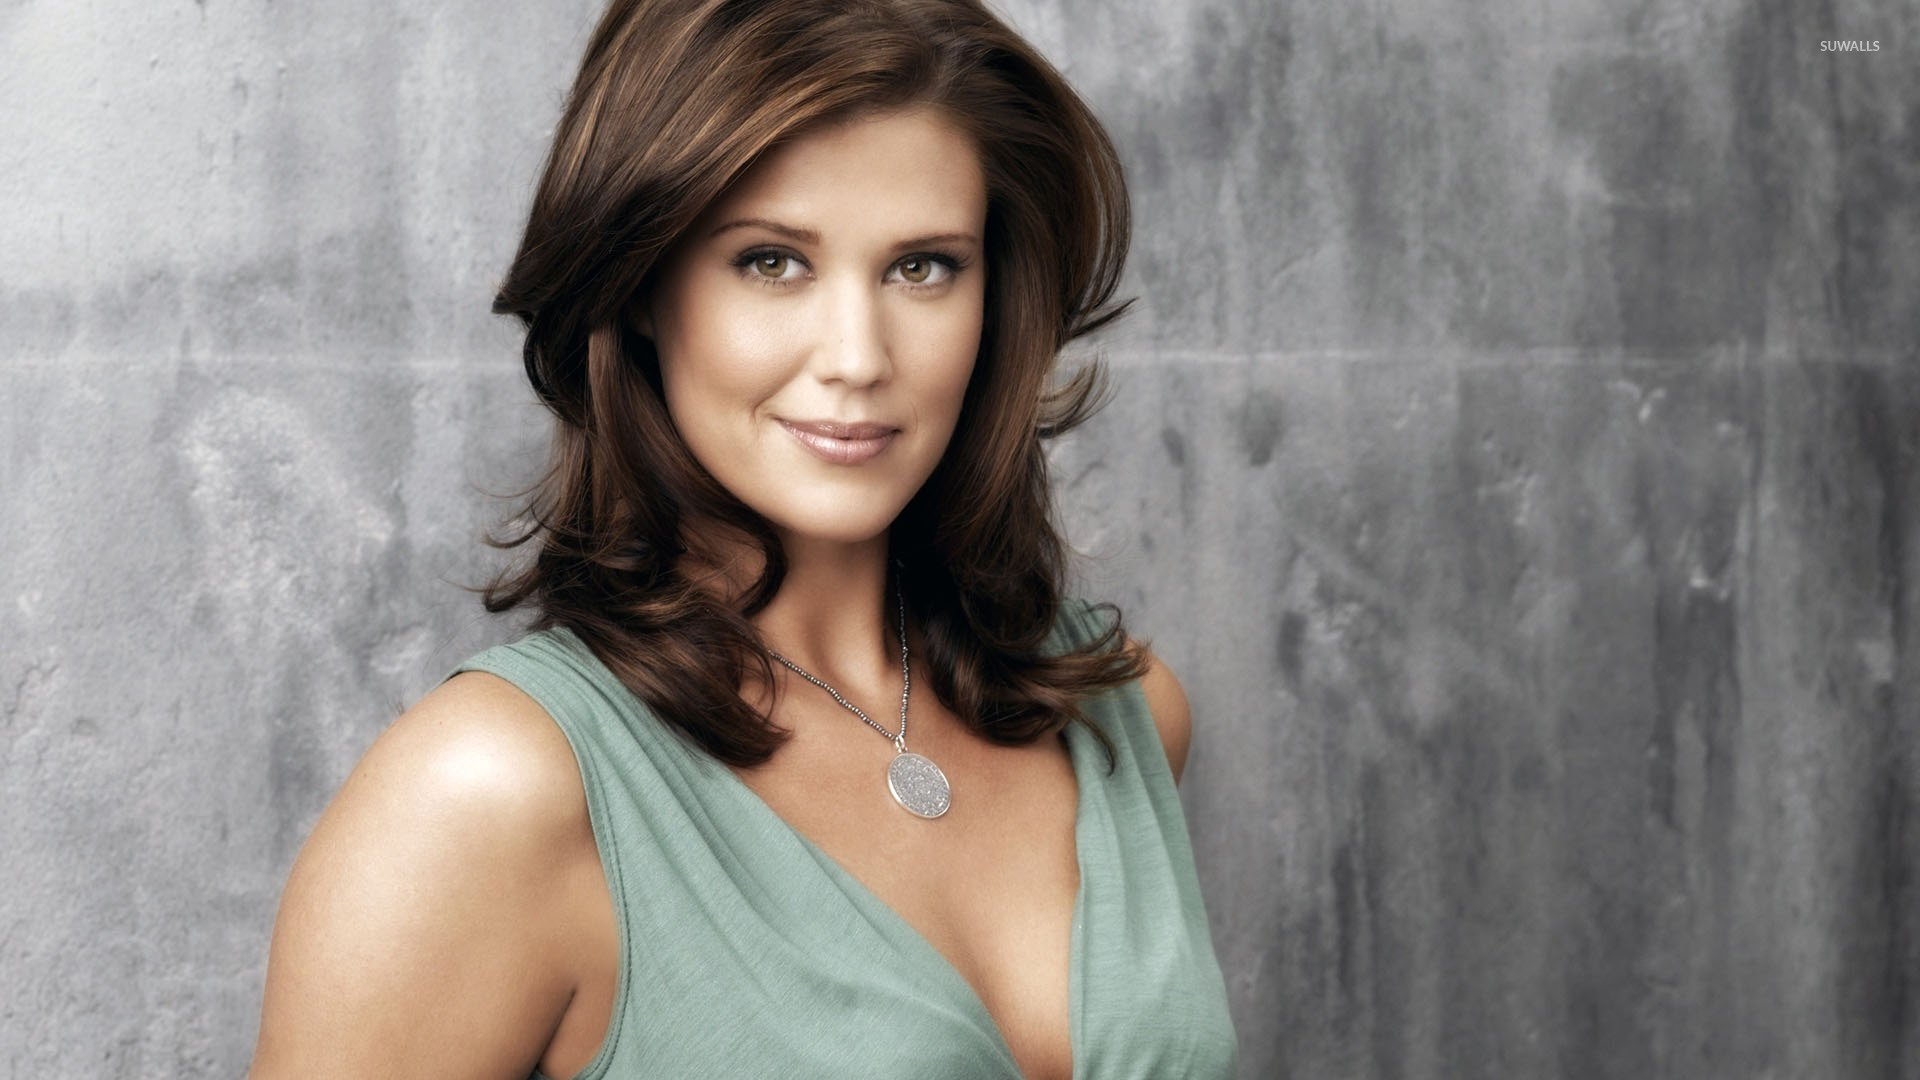 Sarah Lancaster smiling in a blue top wallpaper   Celebrity wallpapers 1680x1050